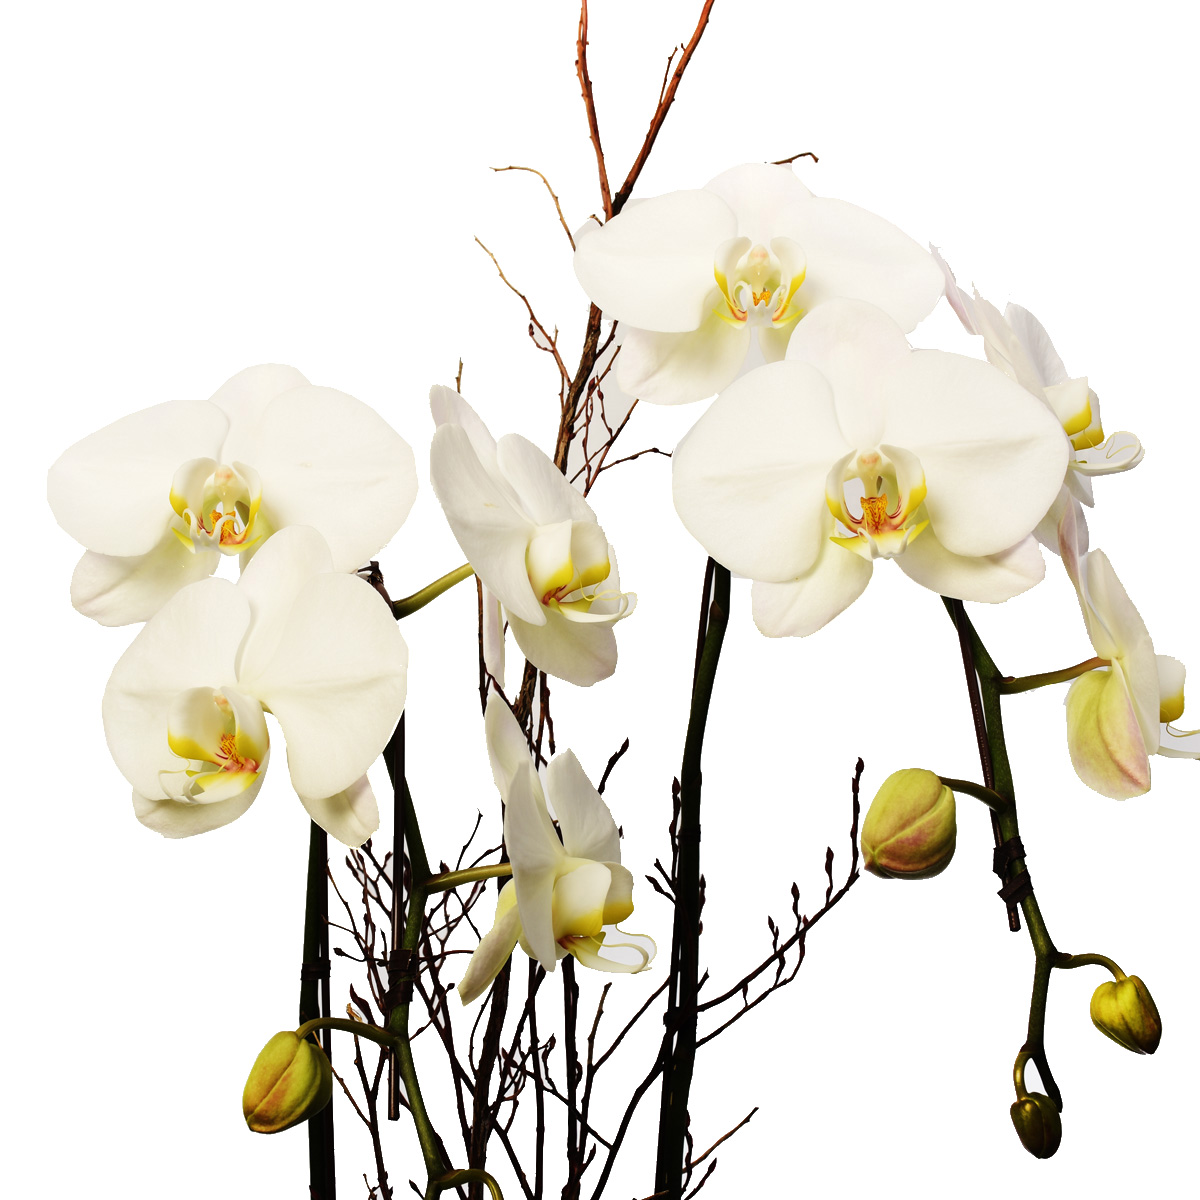 Orchid plants for sale in Vancouver flower shop Adele Rae